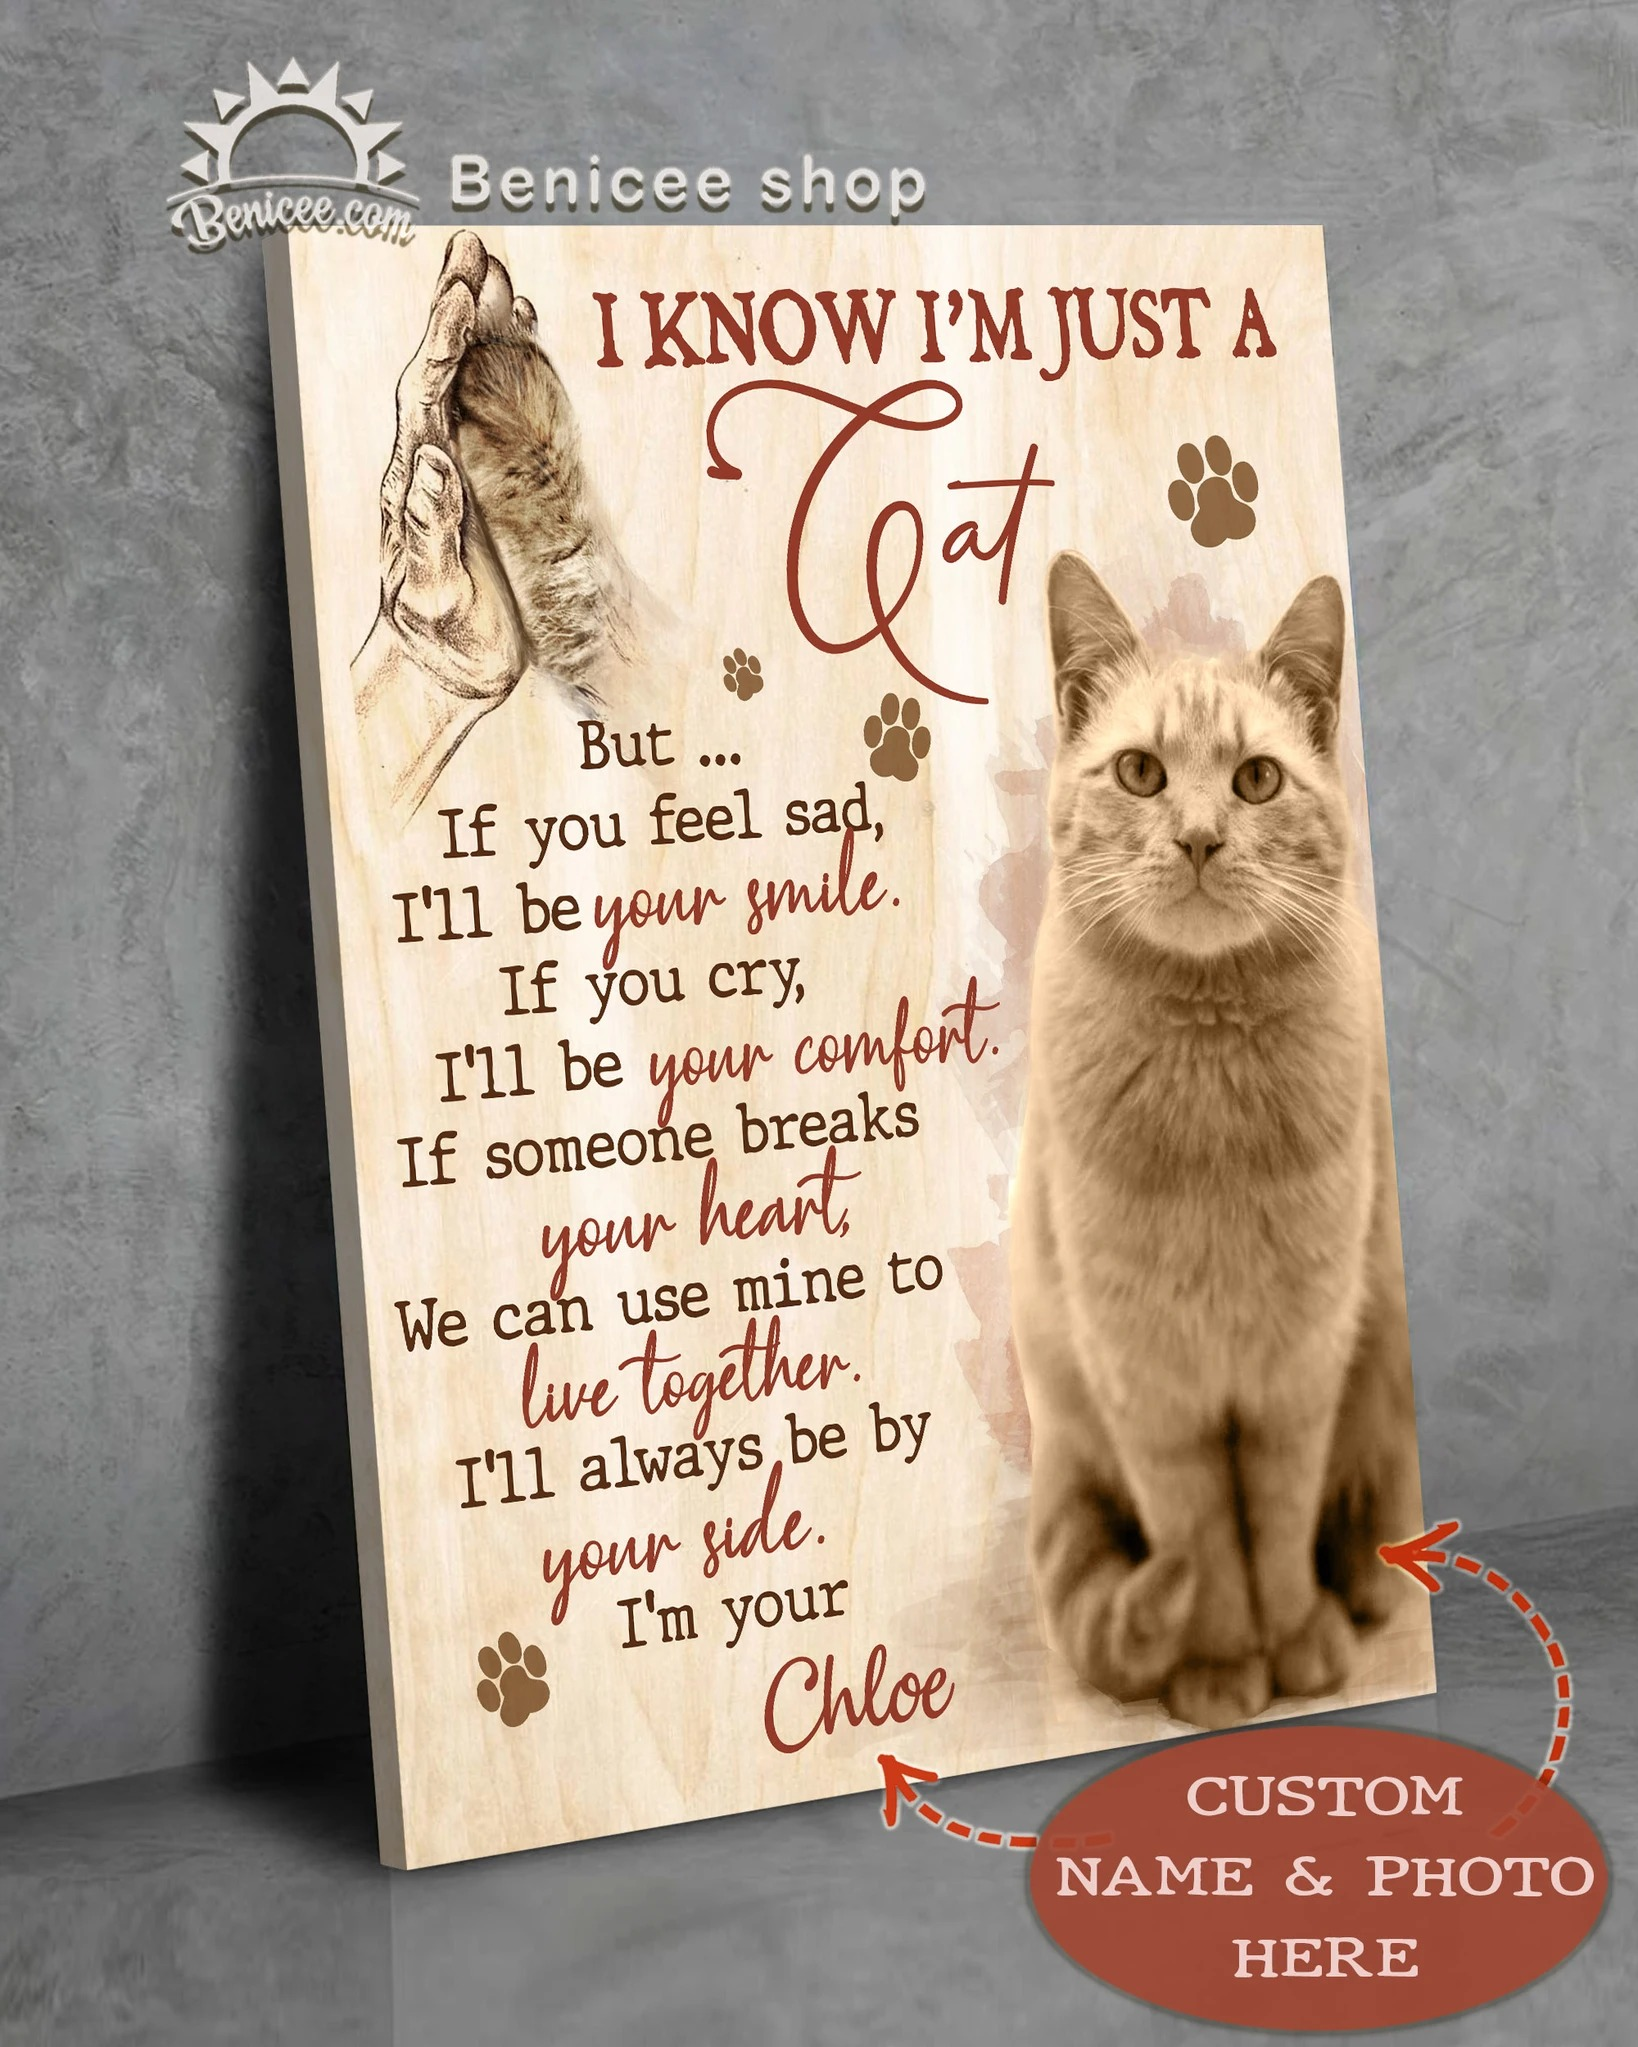 Custom photo and name i know i'm just a cat canvas prints 2